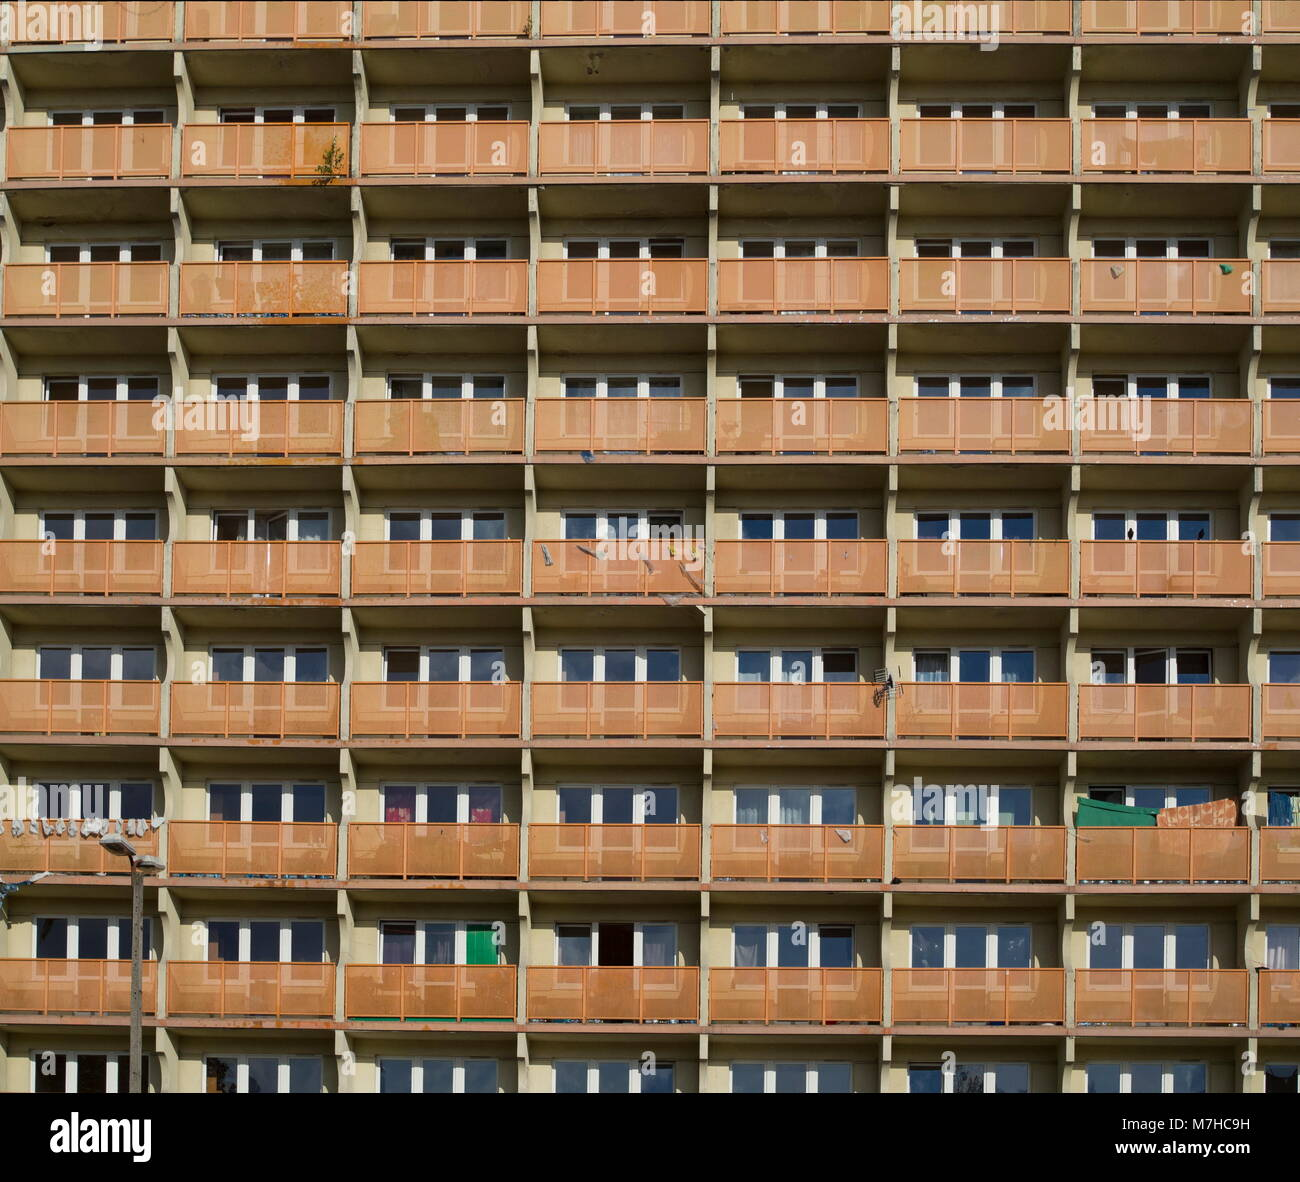 Student life. This building for university students. Huge building included many little flats. - Stock Image